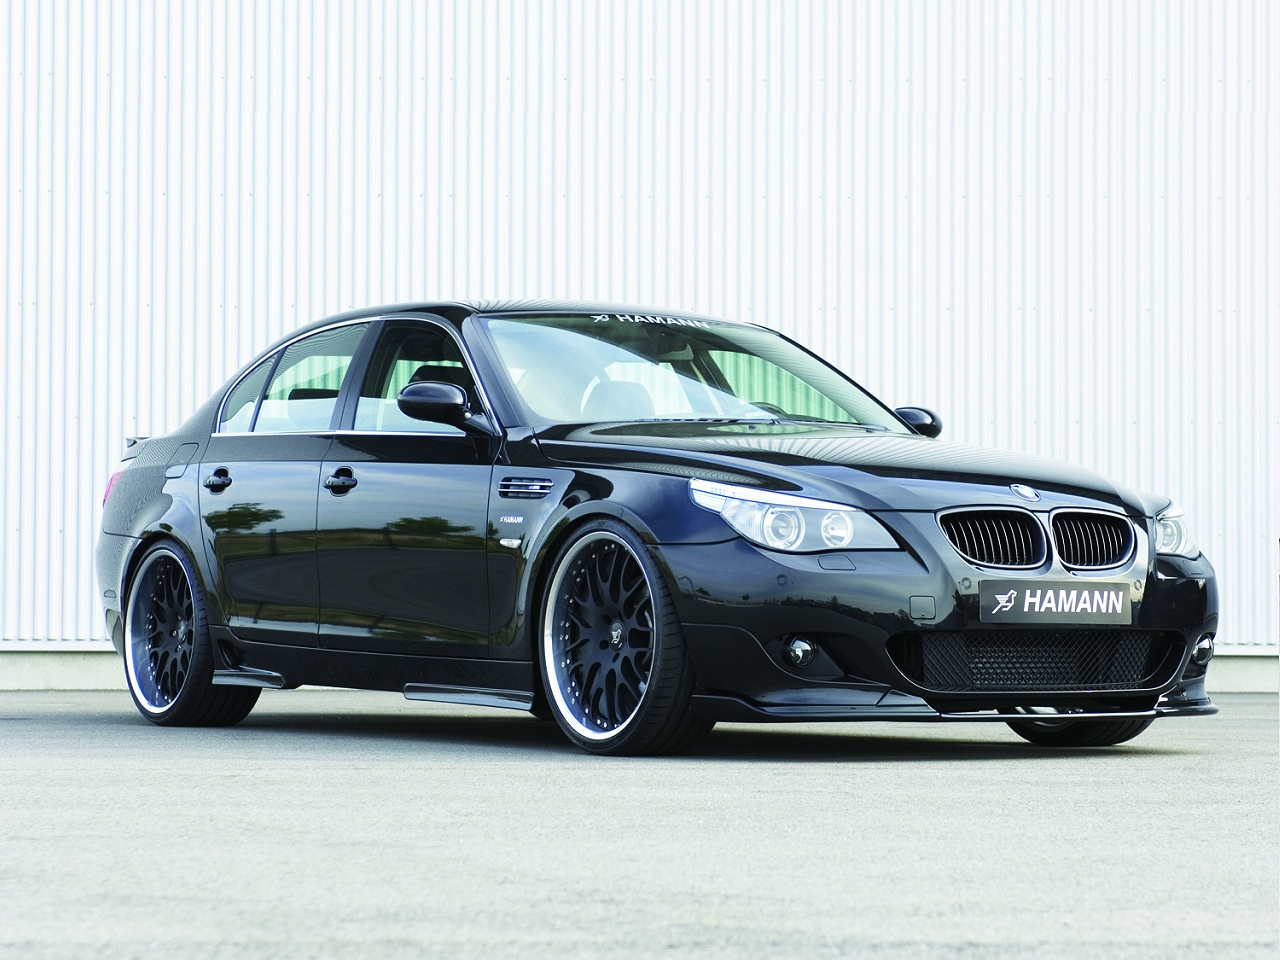 wallpaper 1280x960: Diesel-powered BMW 5-series by Hamann - right-front view